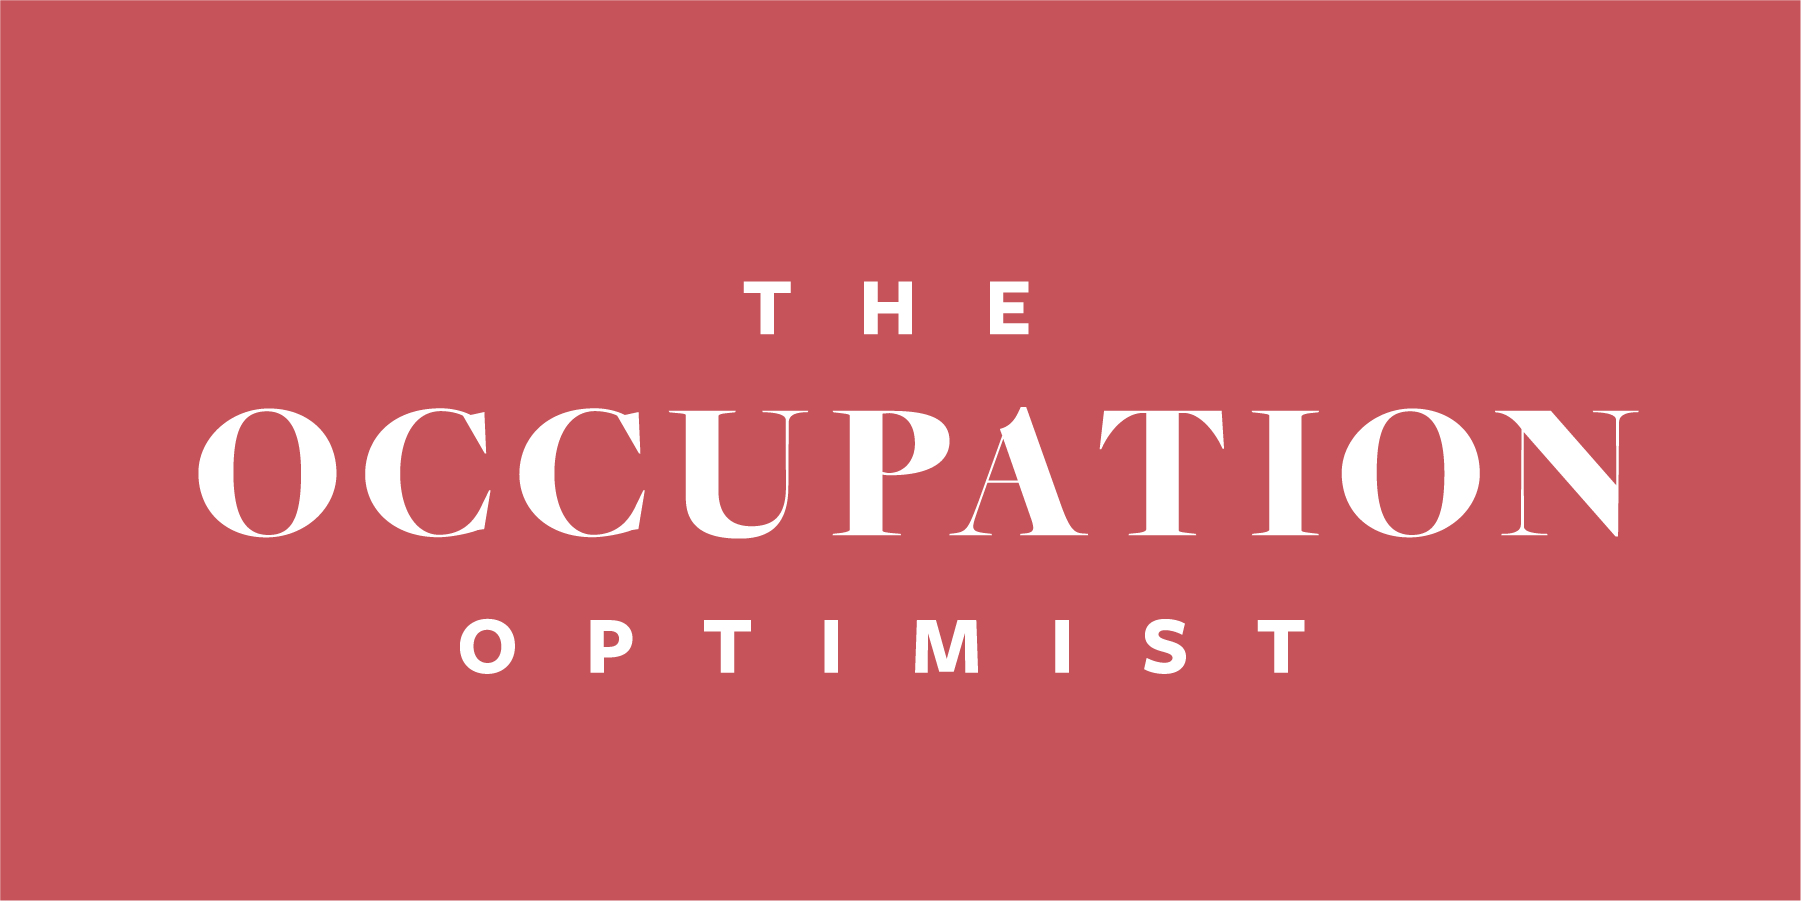 Occupation Optimist